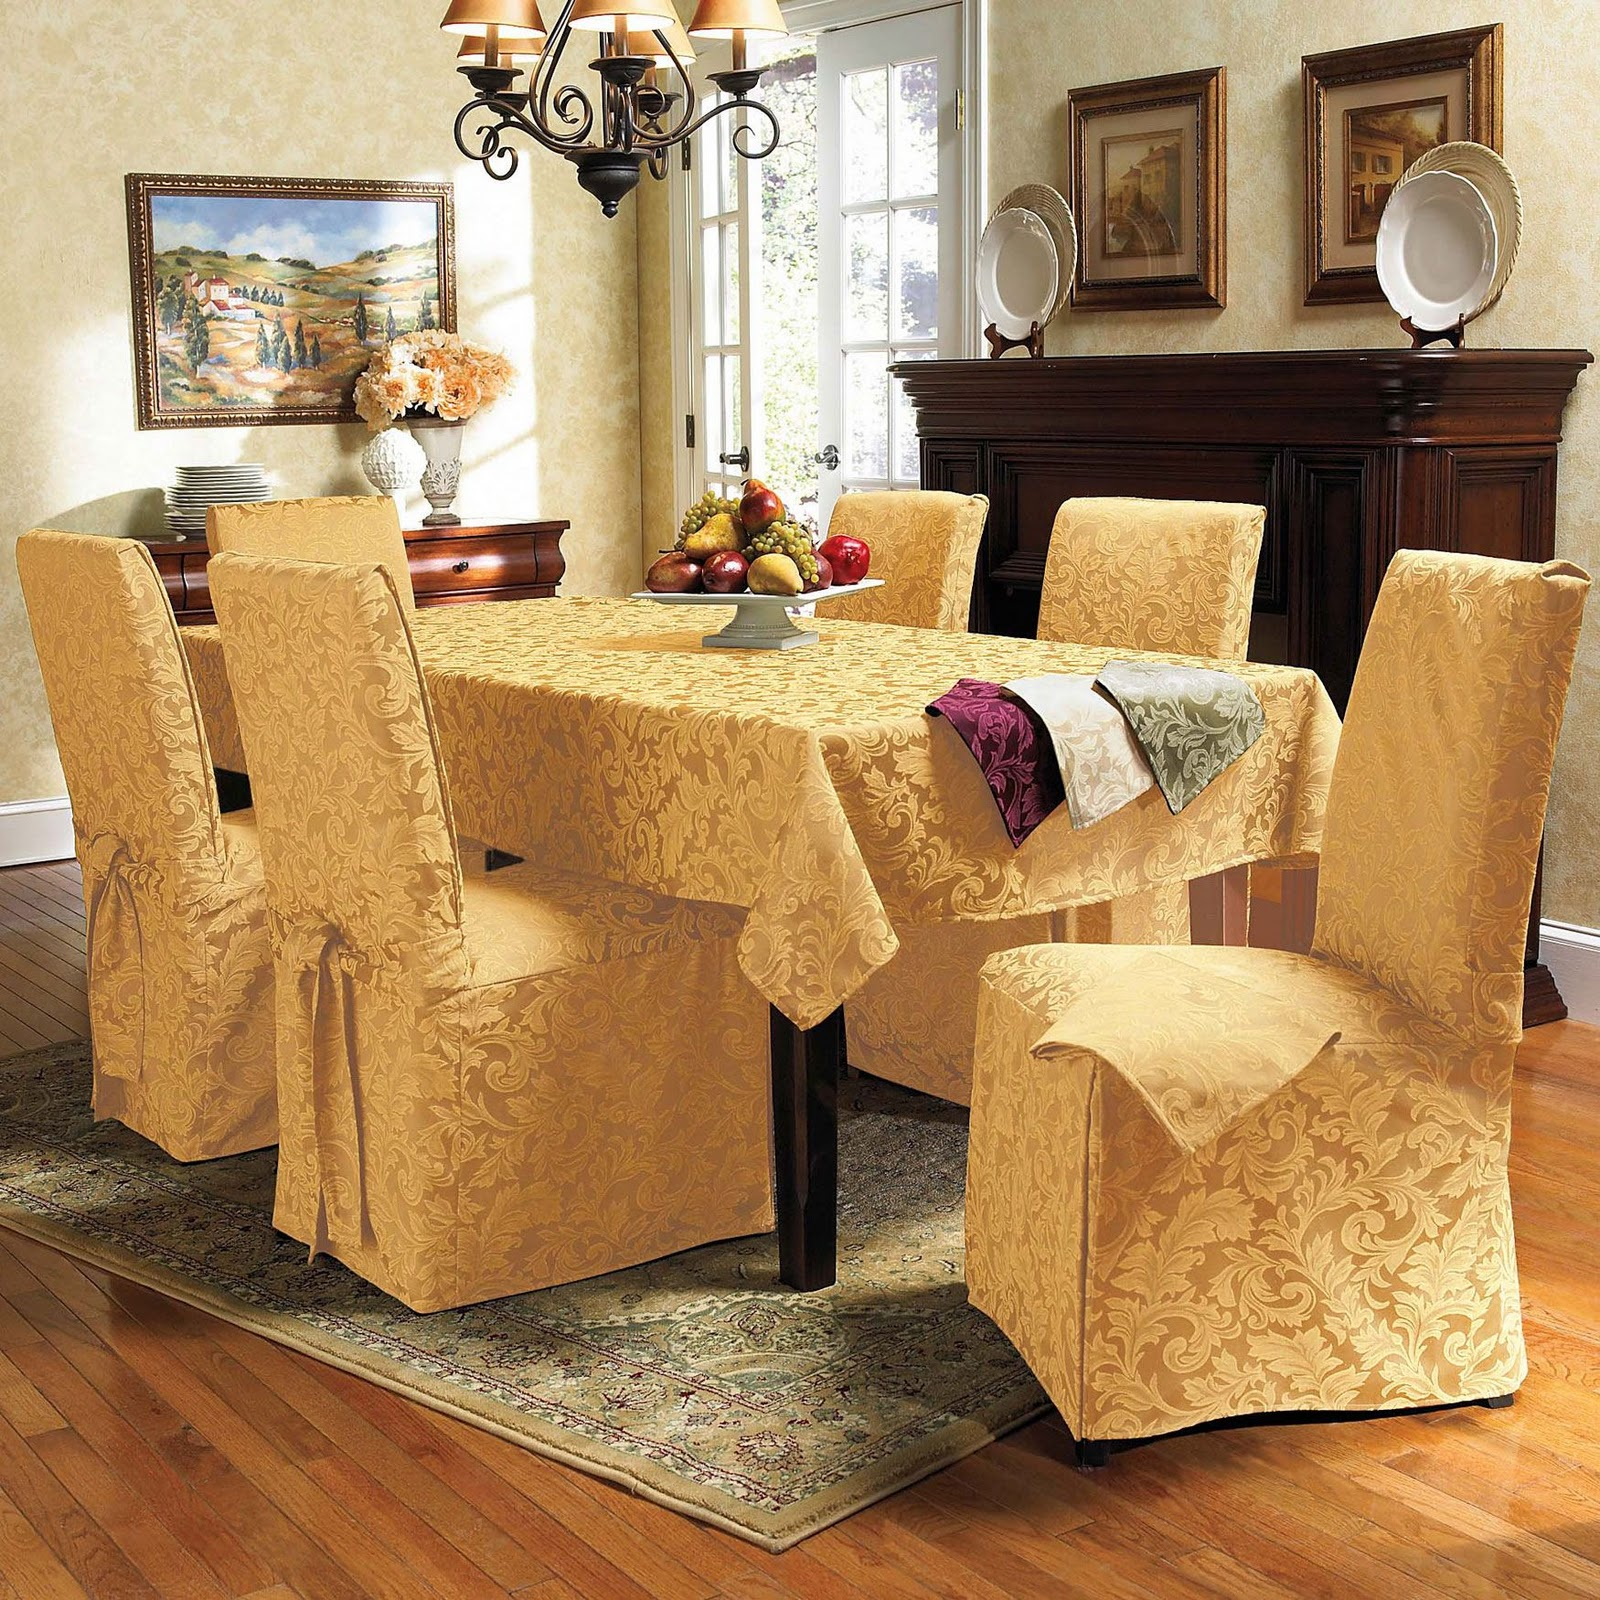 Chair covers dining room chairs